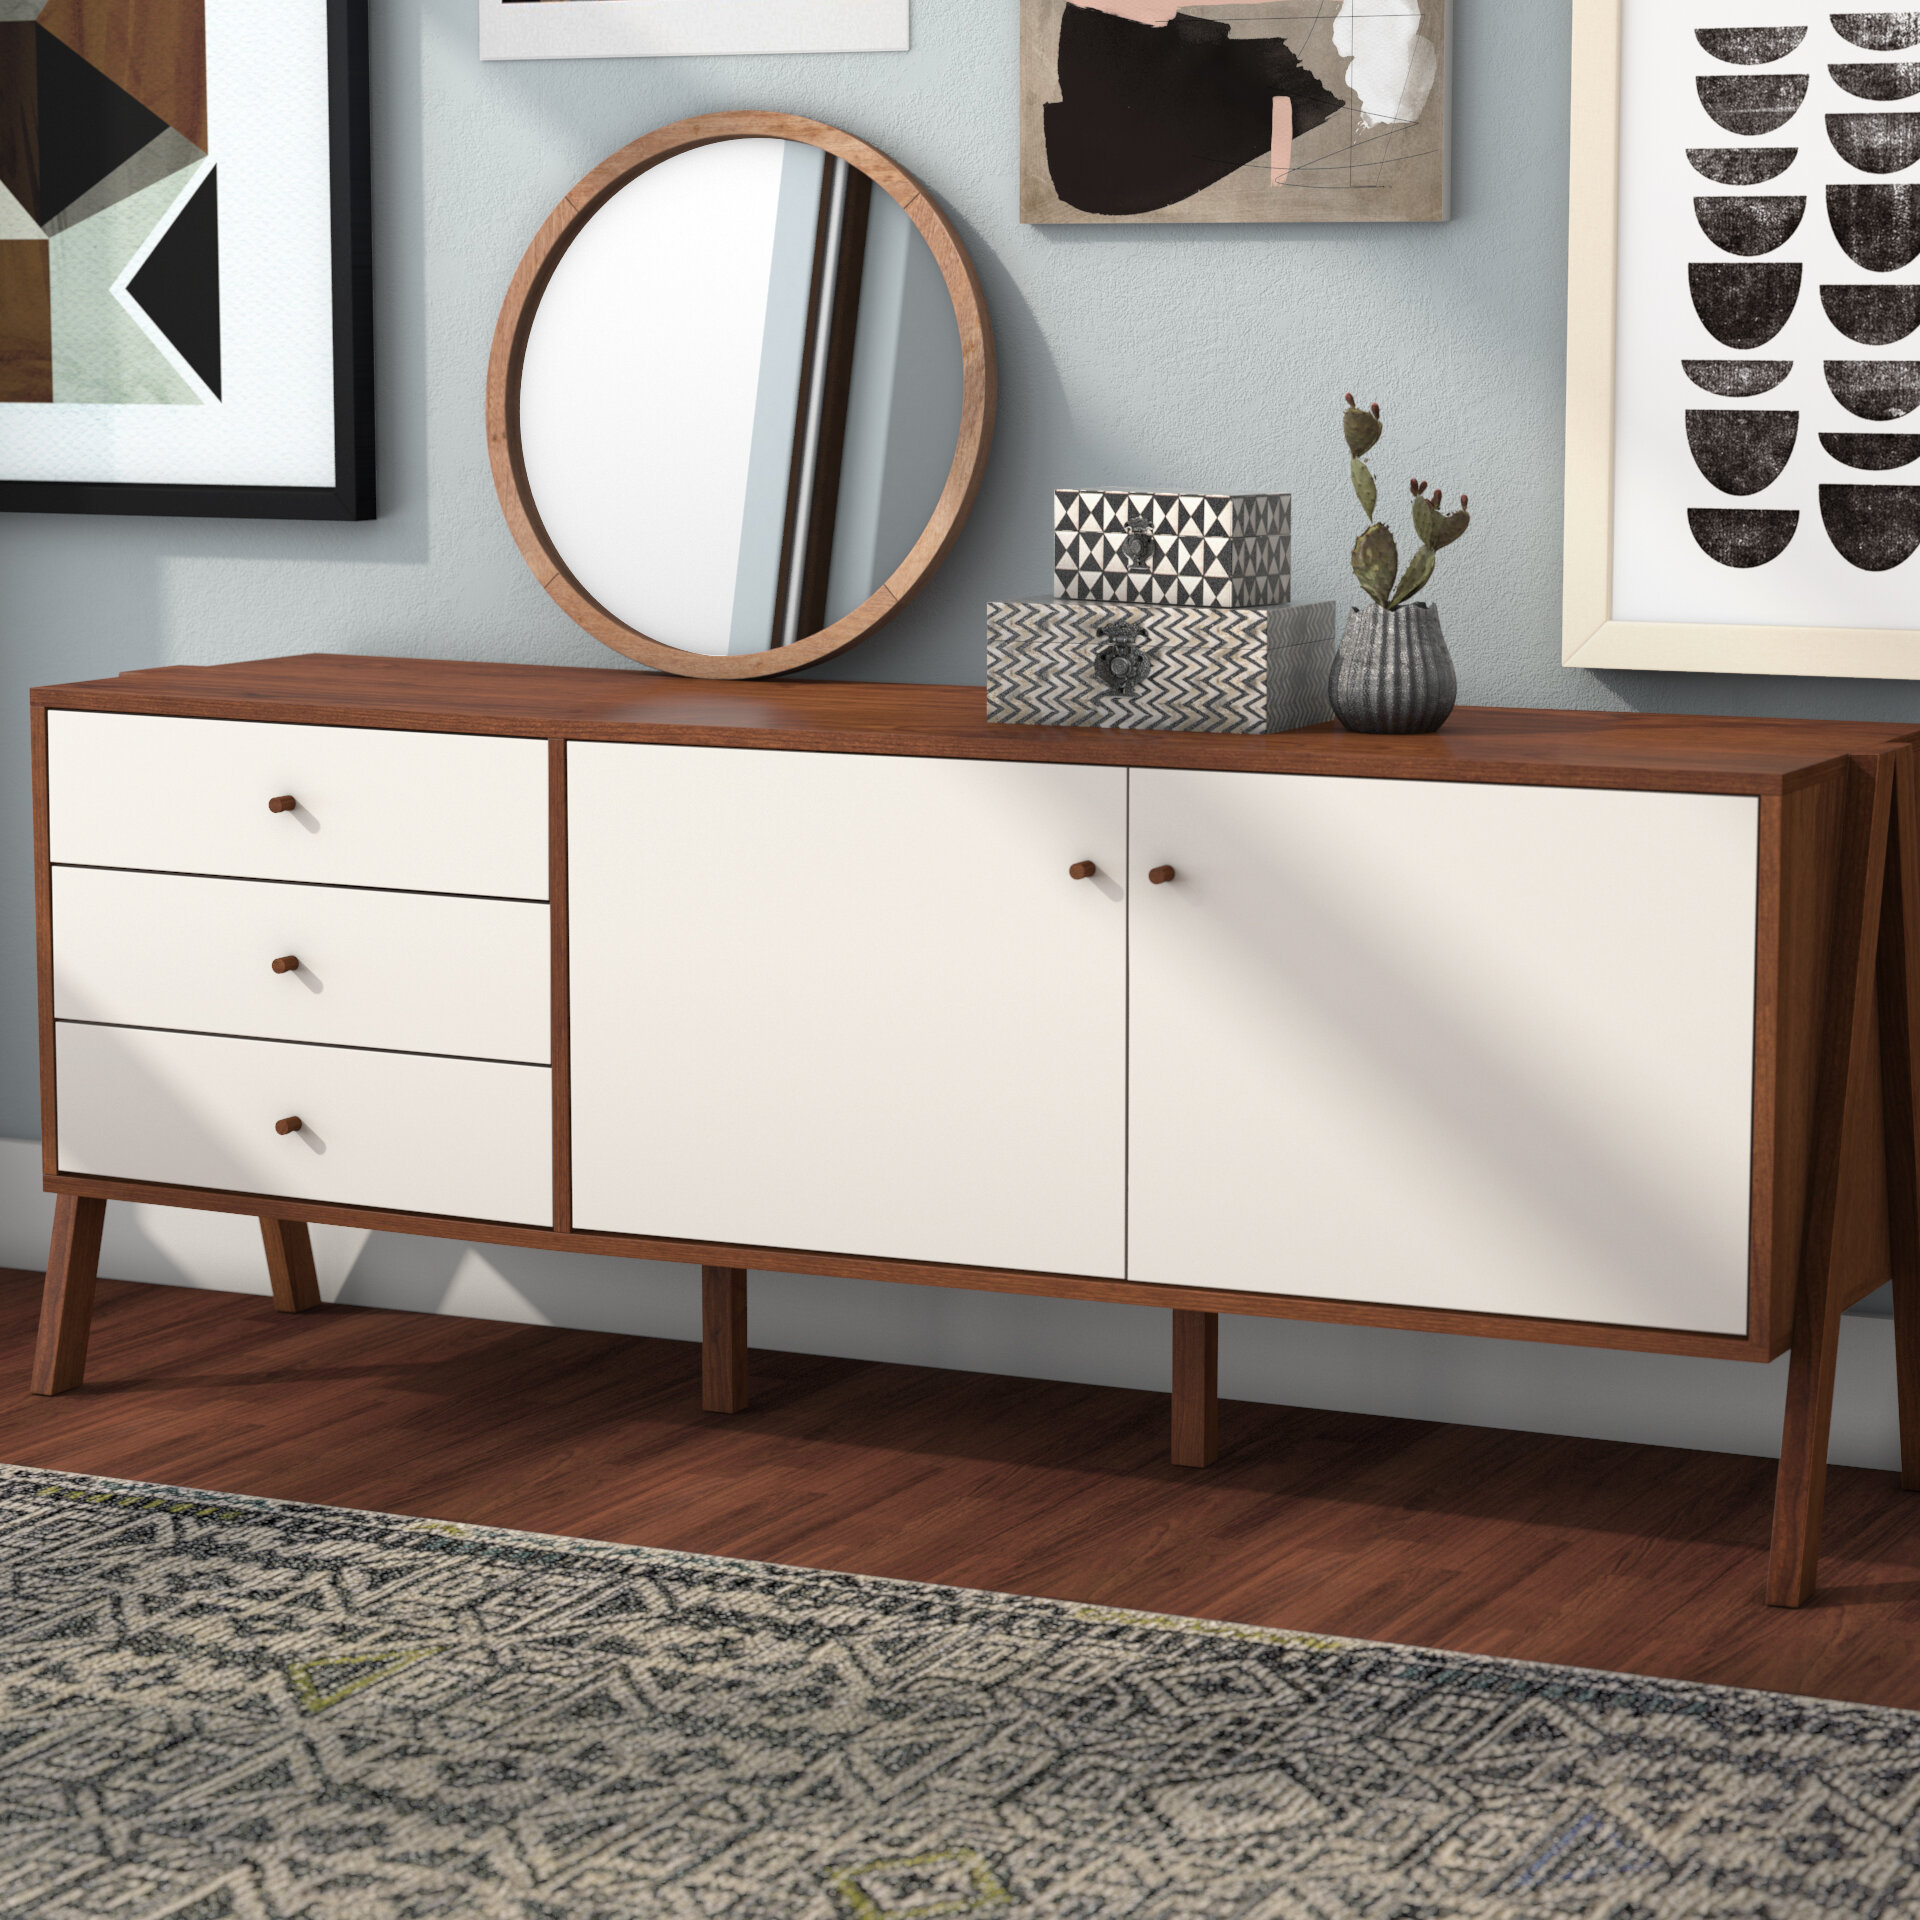 console storage king content table res technicalissues global cherry with s and p drawers brand inflow inflowcomponent wood sideboard kings